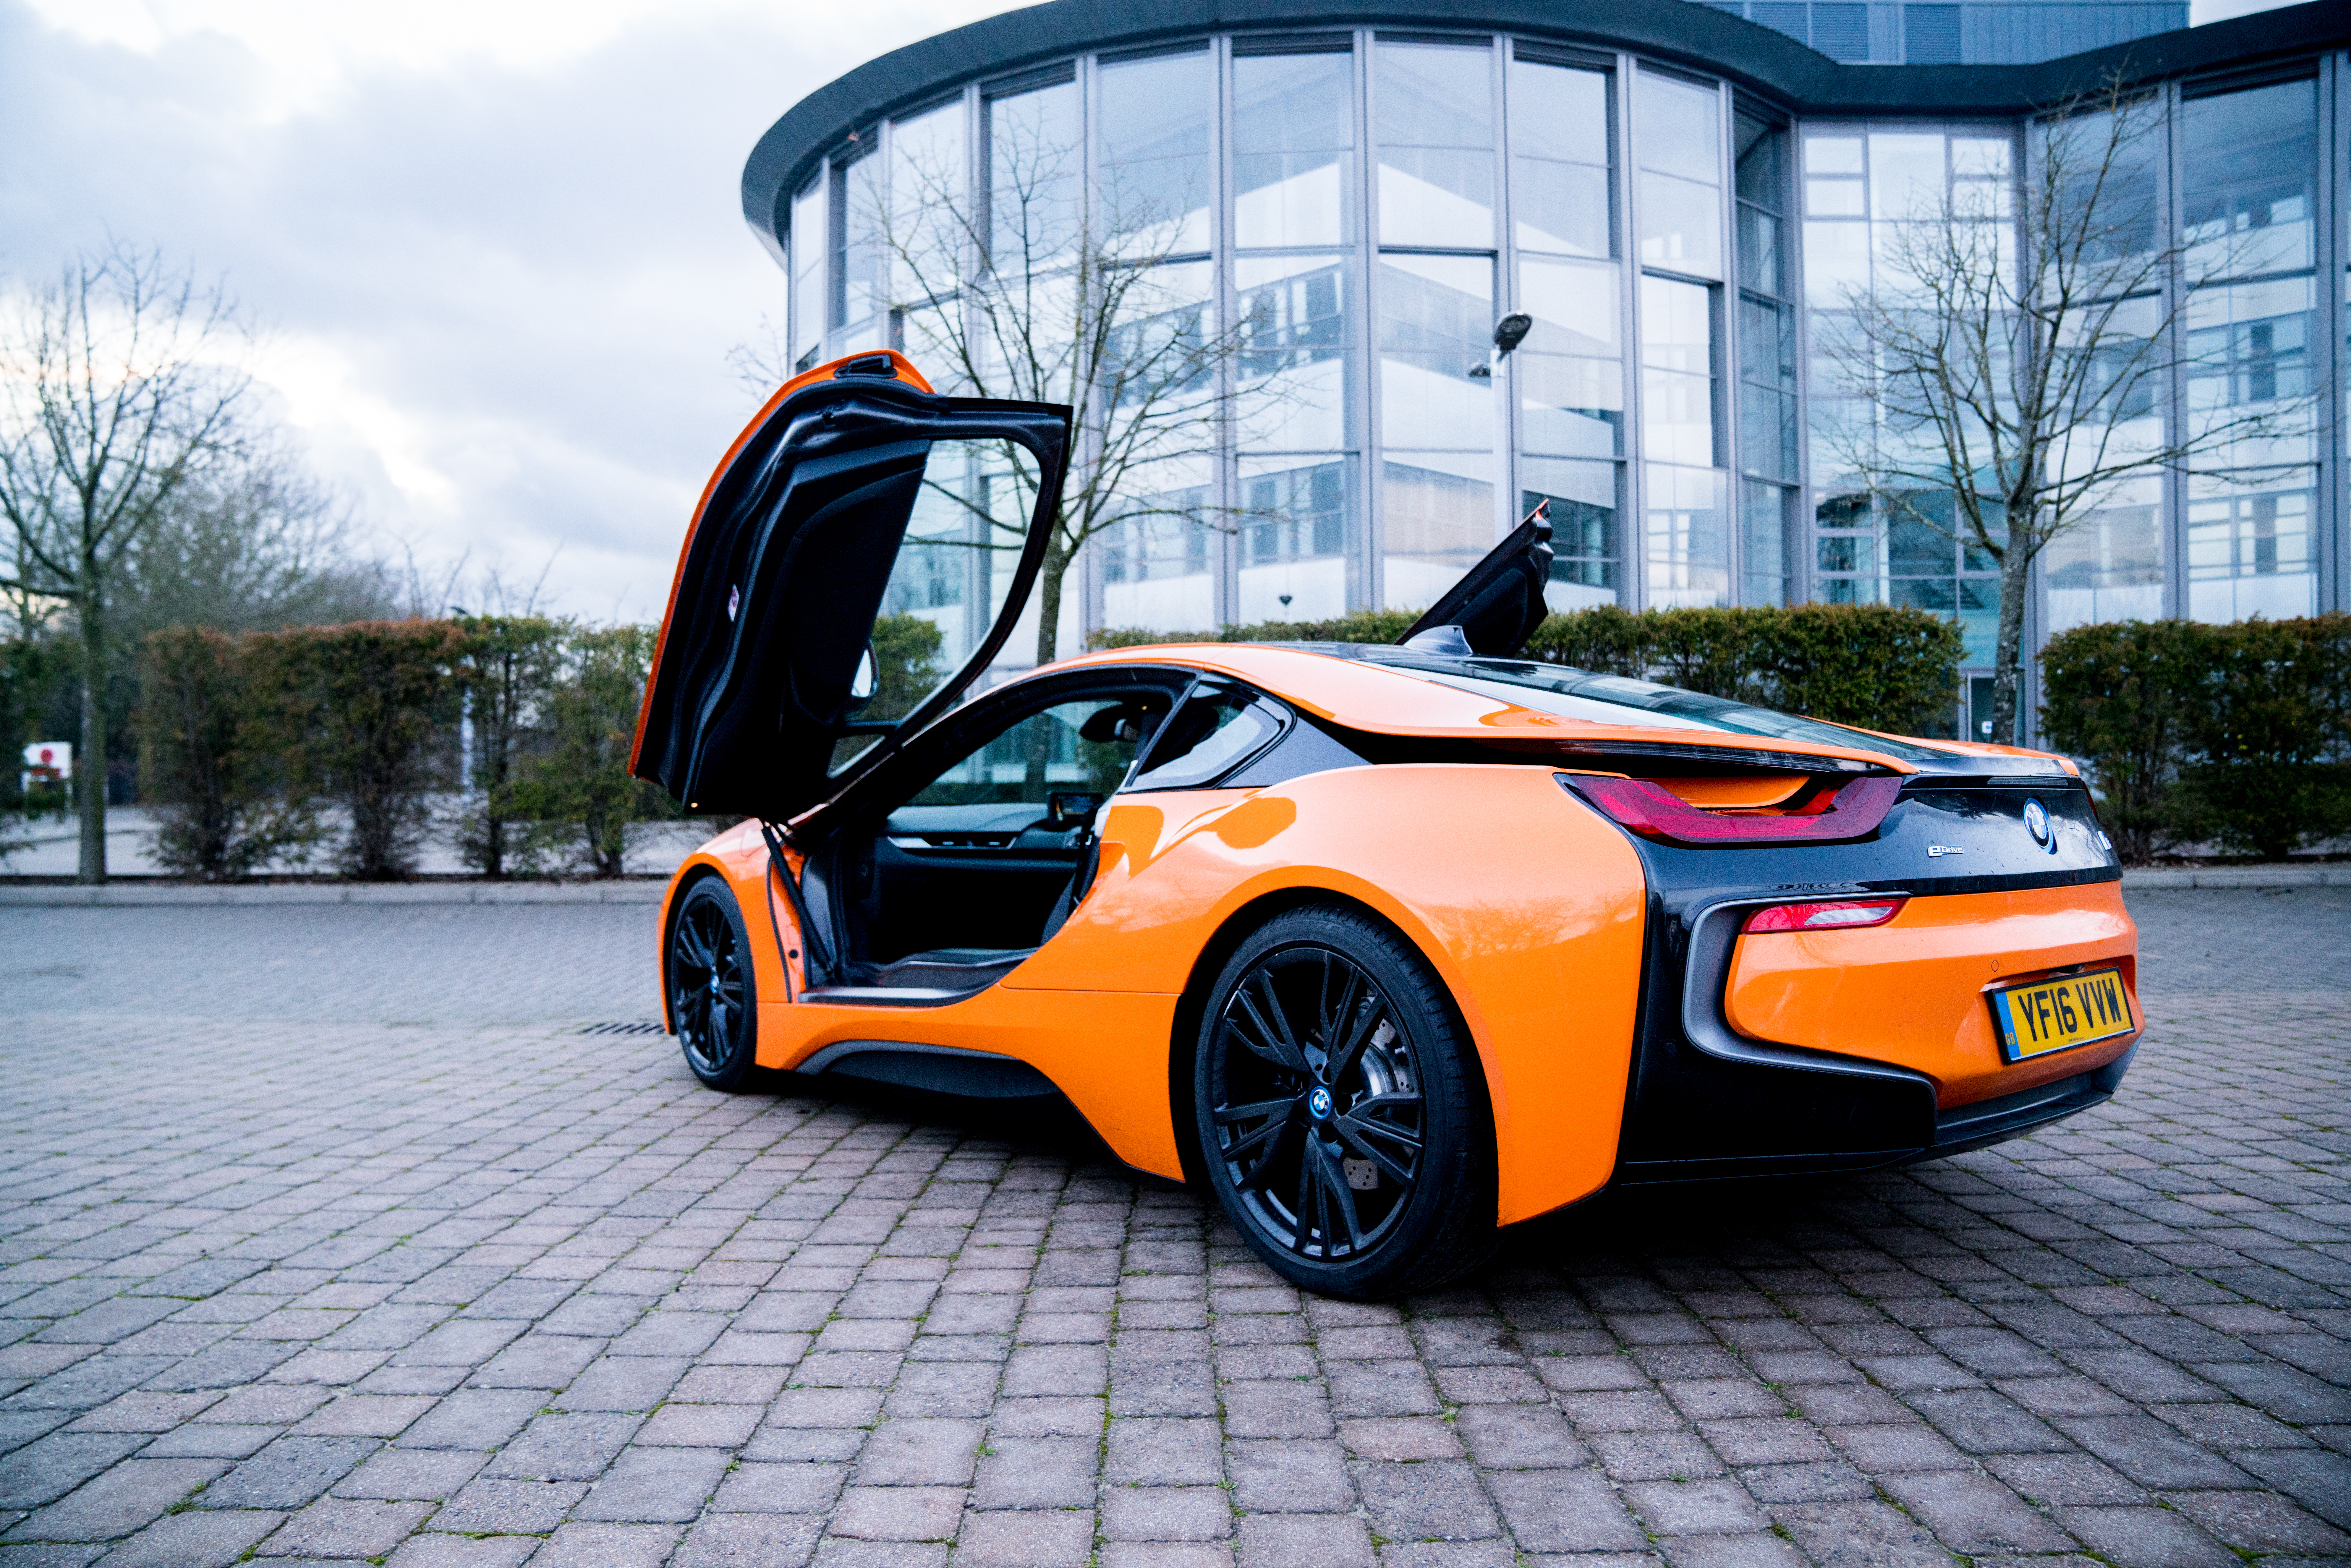 DSC7029 We Took The Orange BMW i8 For A Spin And It Was Wonderful